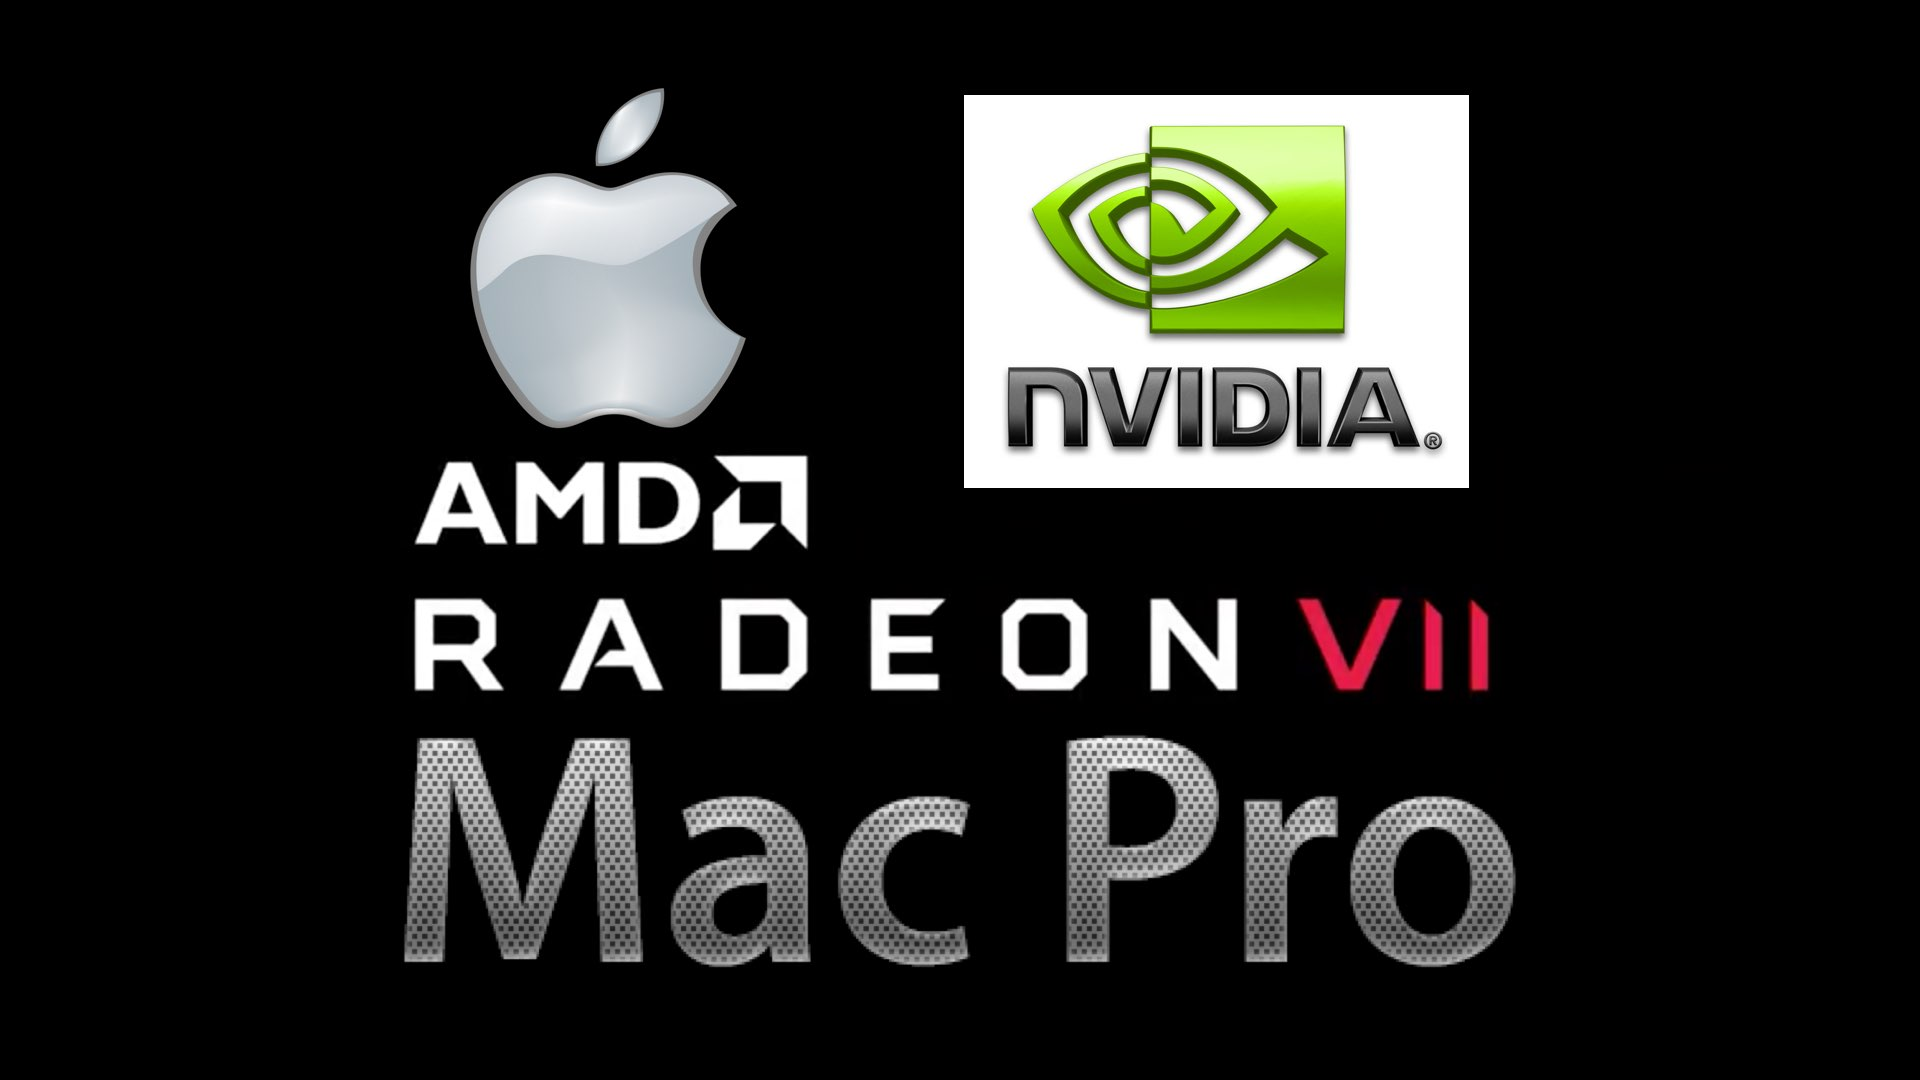 Would Apple Ditch NVIDIA for AMD's new Radeon VII? The Mac